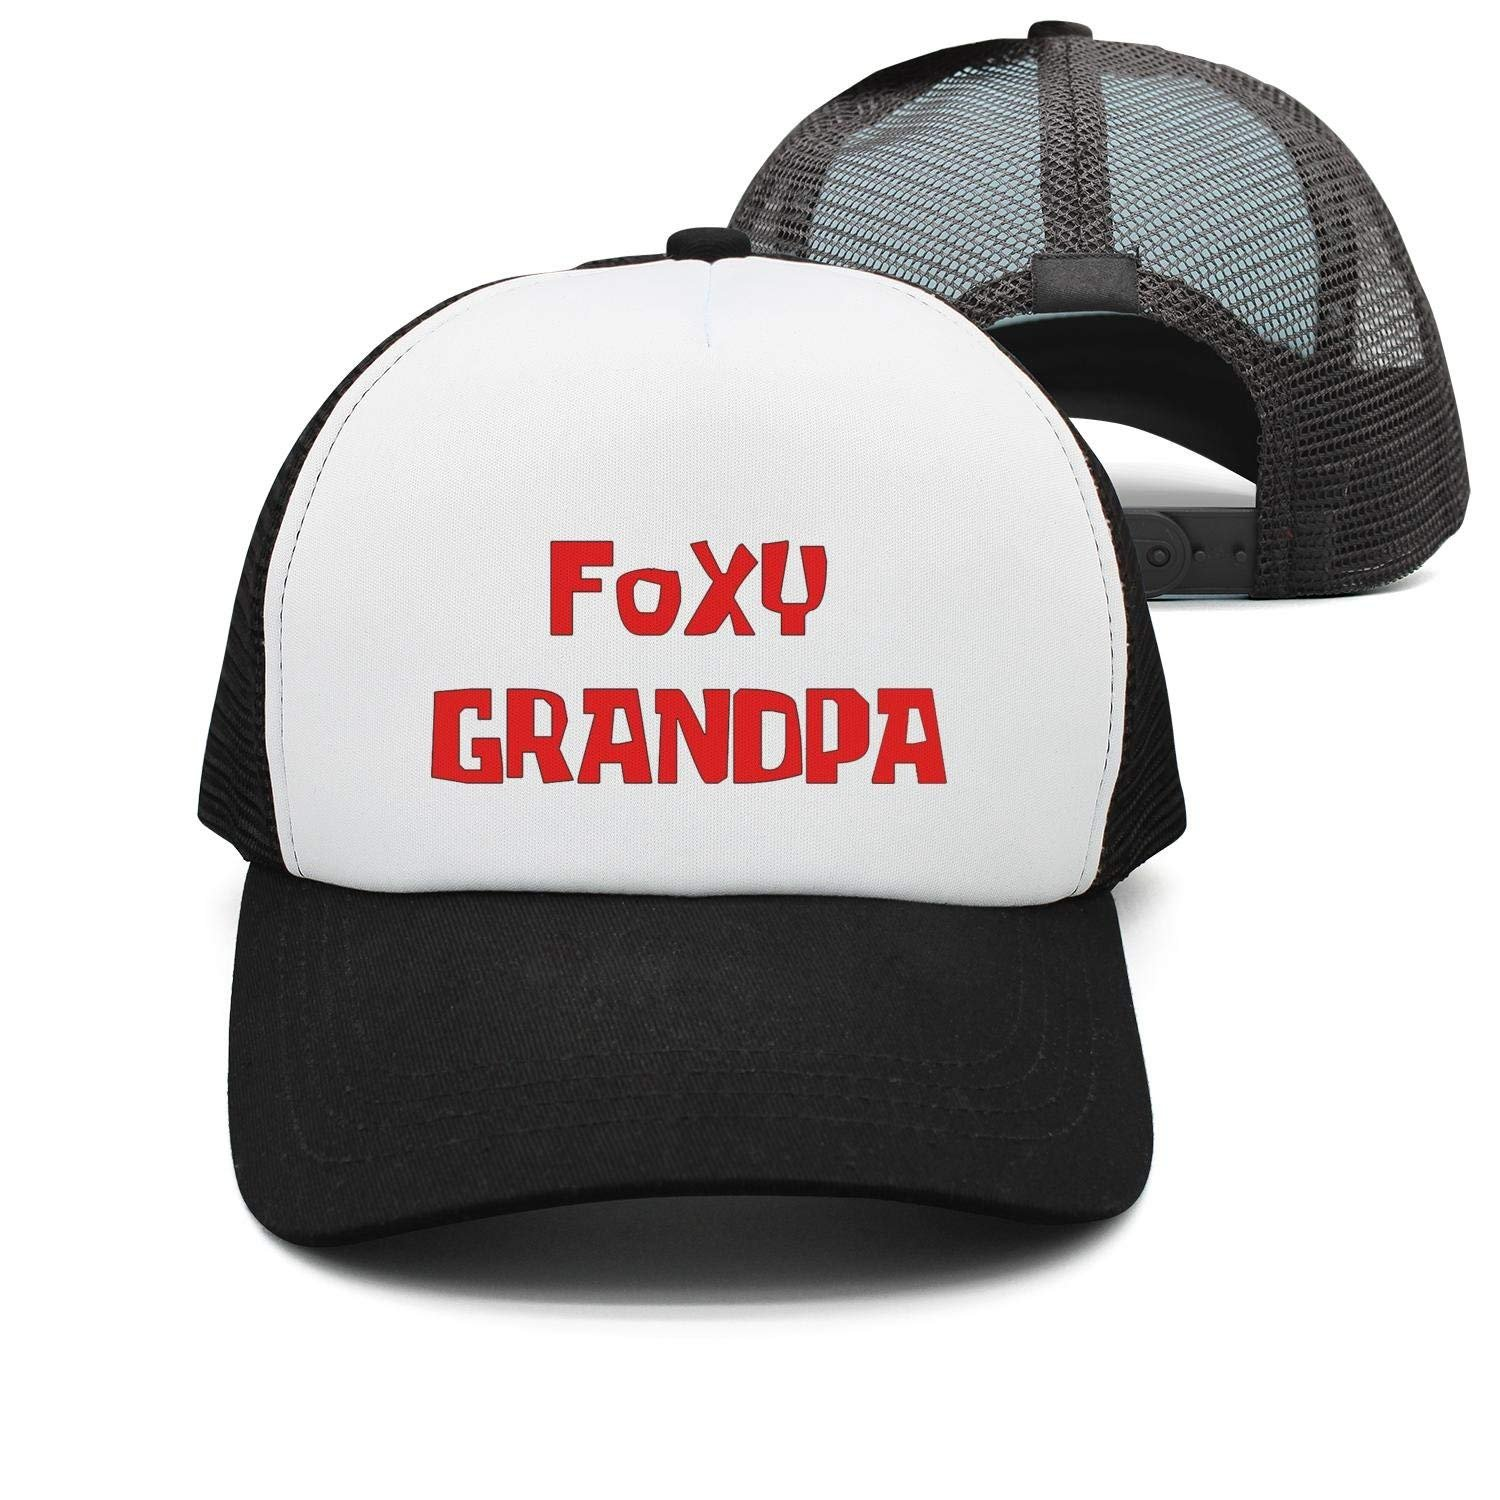 Funny Cool Baseball Caps Foxy Grandpa Mesh Truck Fashion Unisex Trucker Hats  at Amazon Men s Clothing store  4bf5f25b576